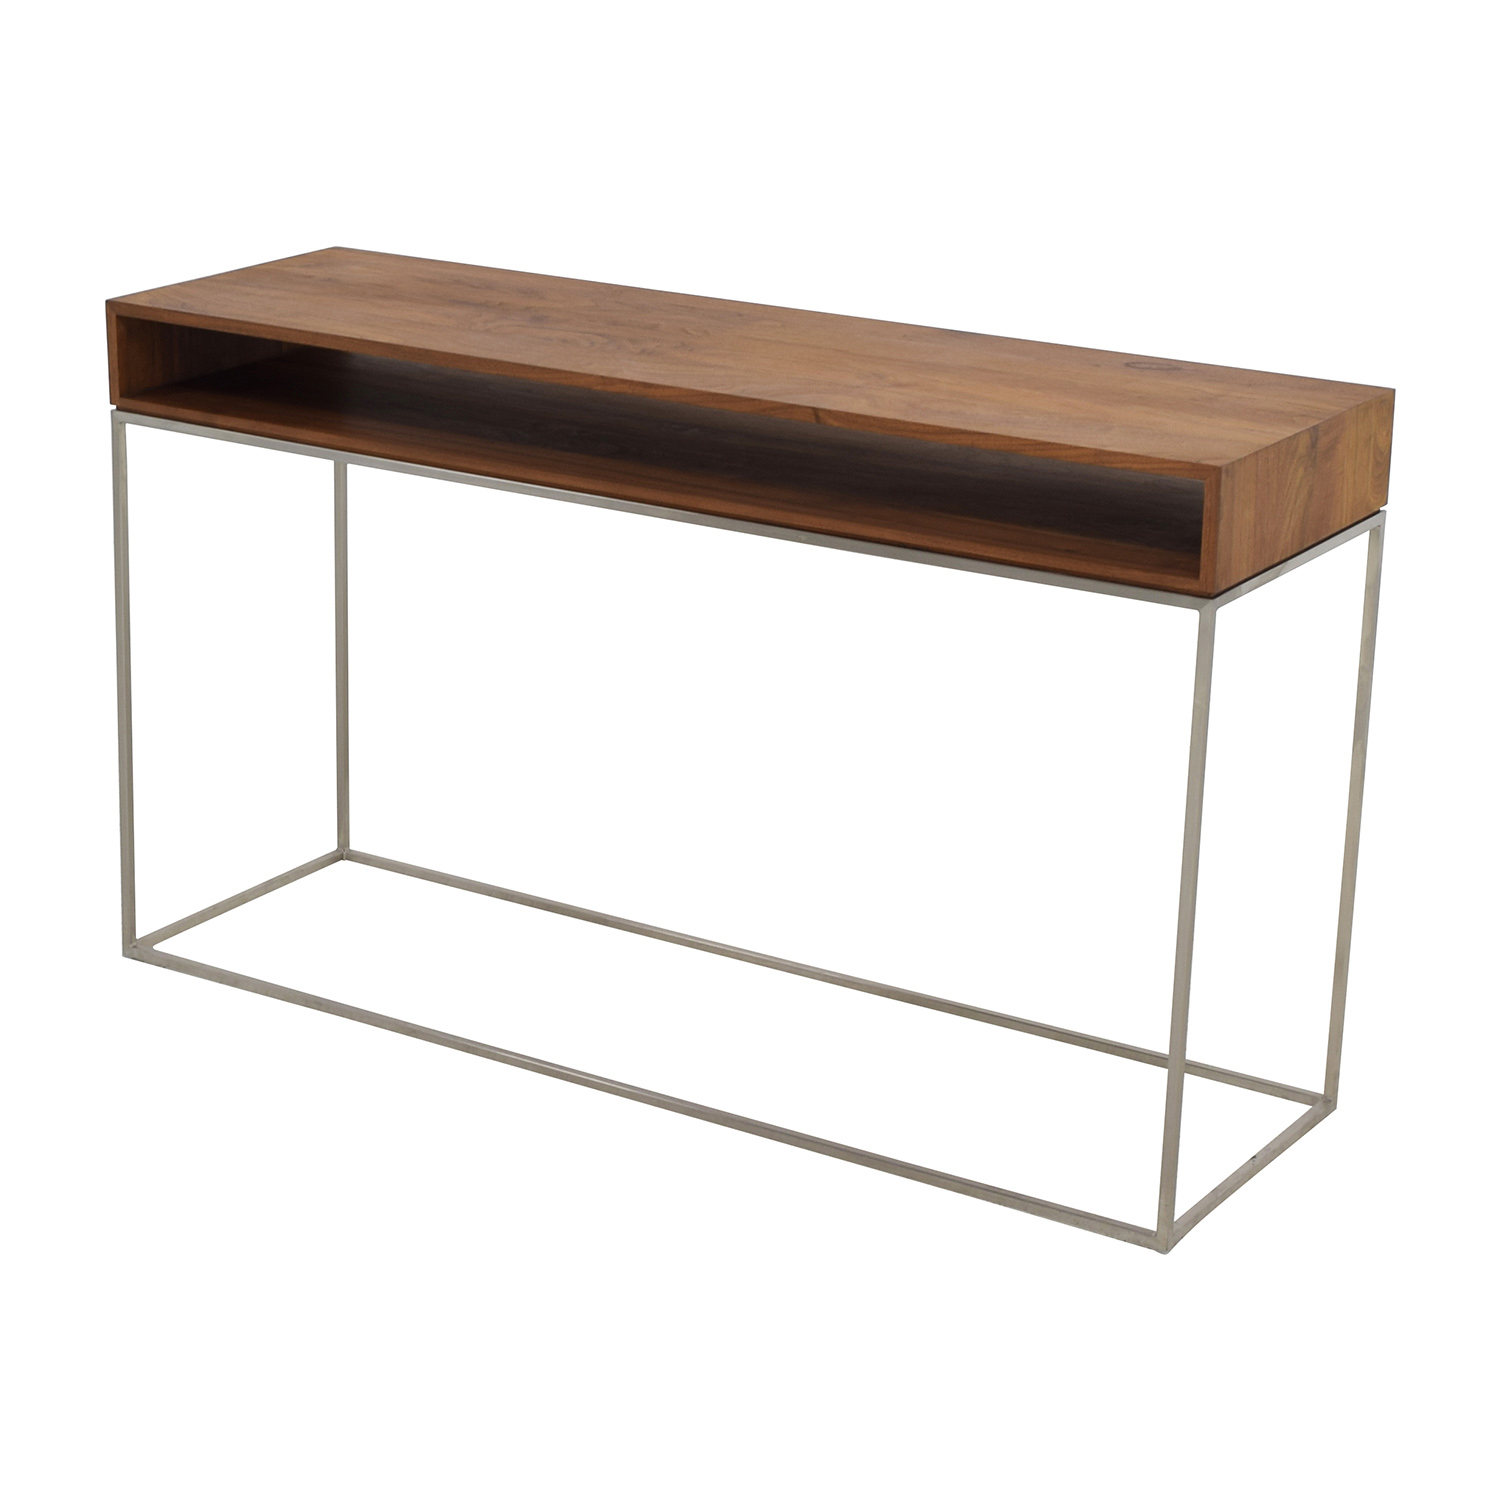 metal console table newcastle wood and metal console table. Black Bedroom Furniture Sets. Home Design Ideas